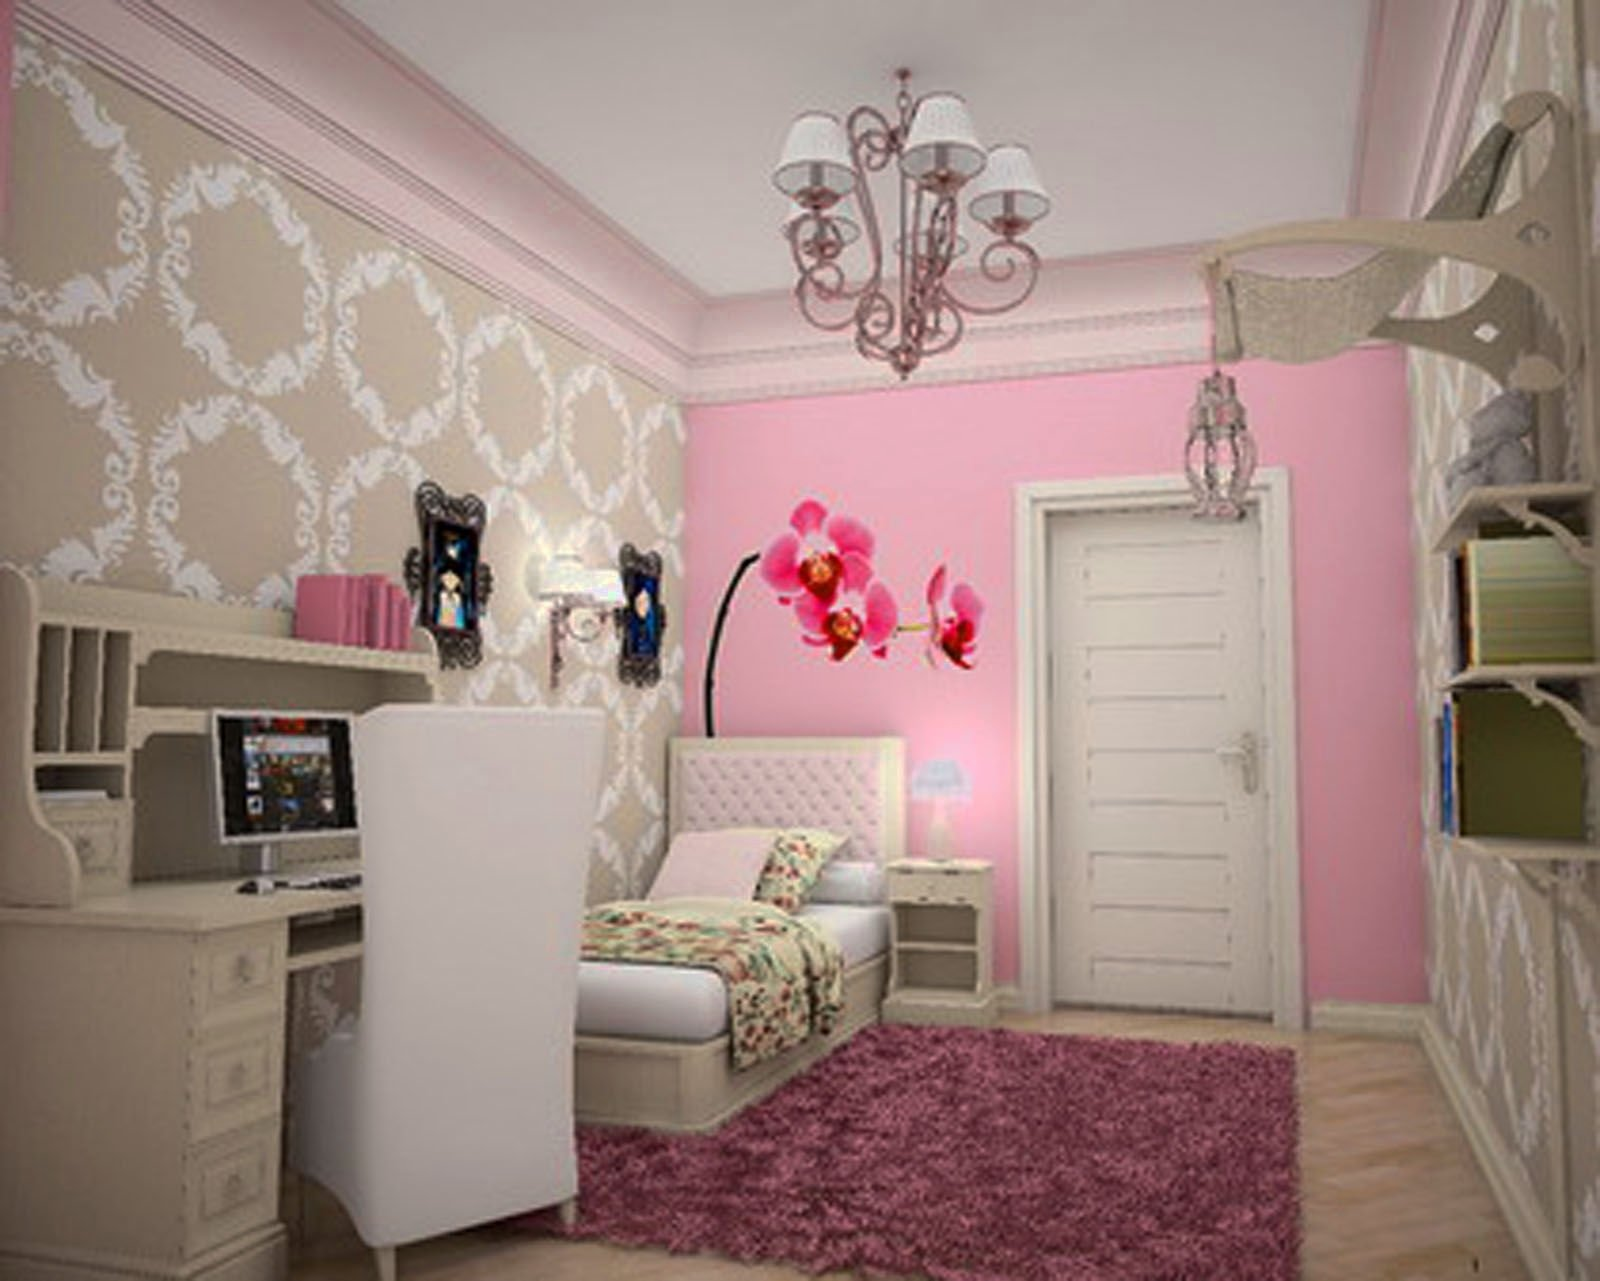 10 Most Recommended Small Teenage Girl Bedroom Ideas 2021